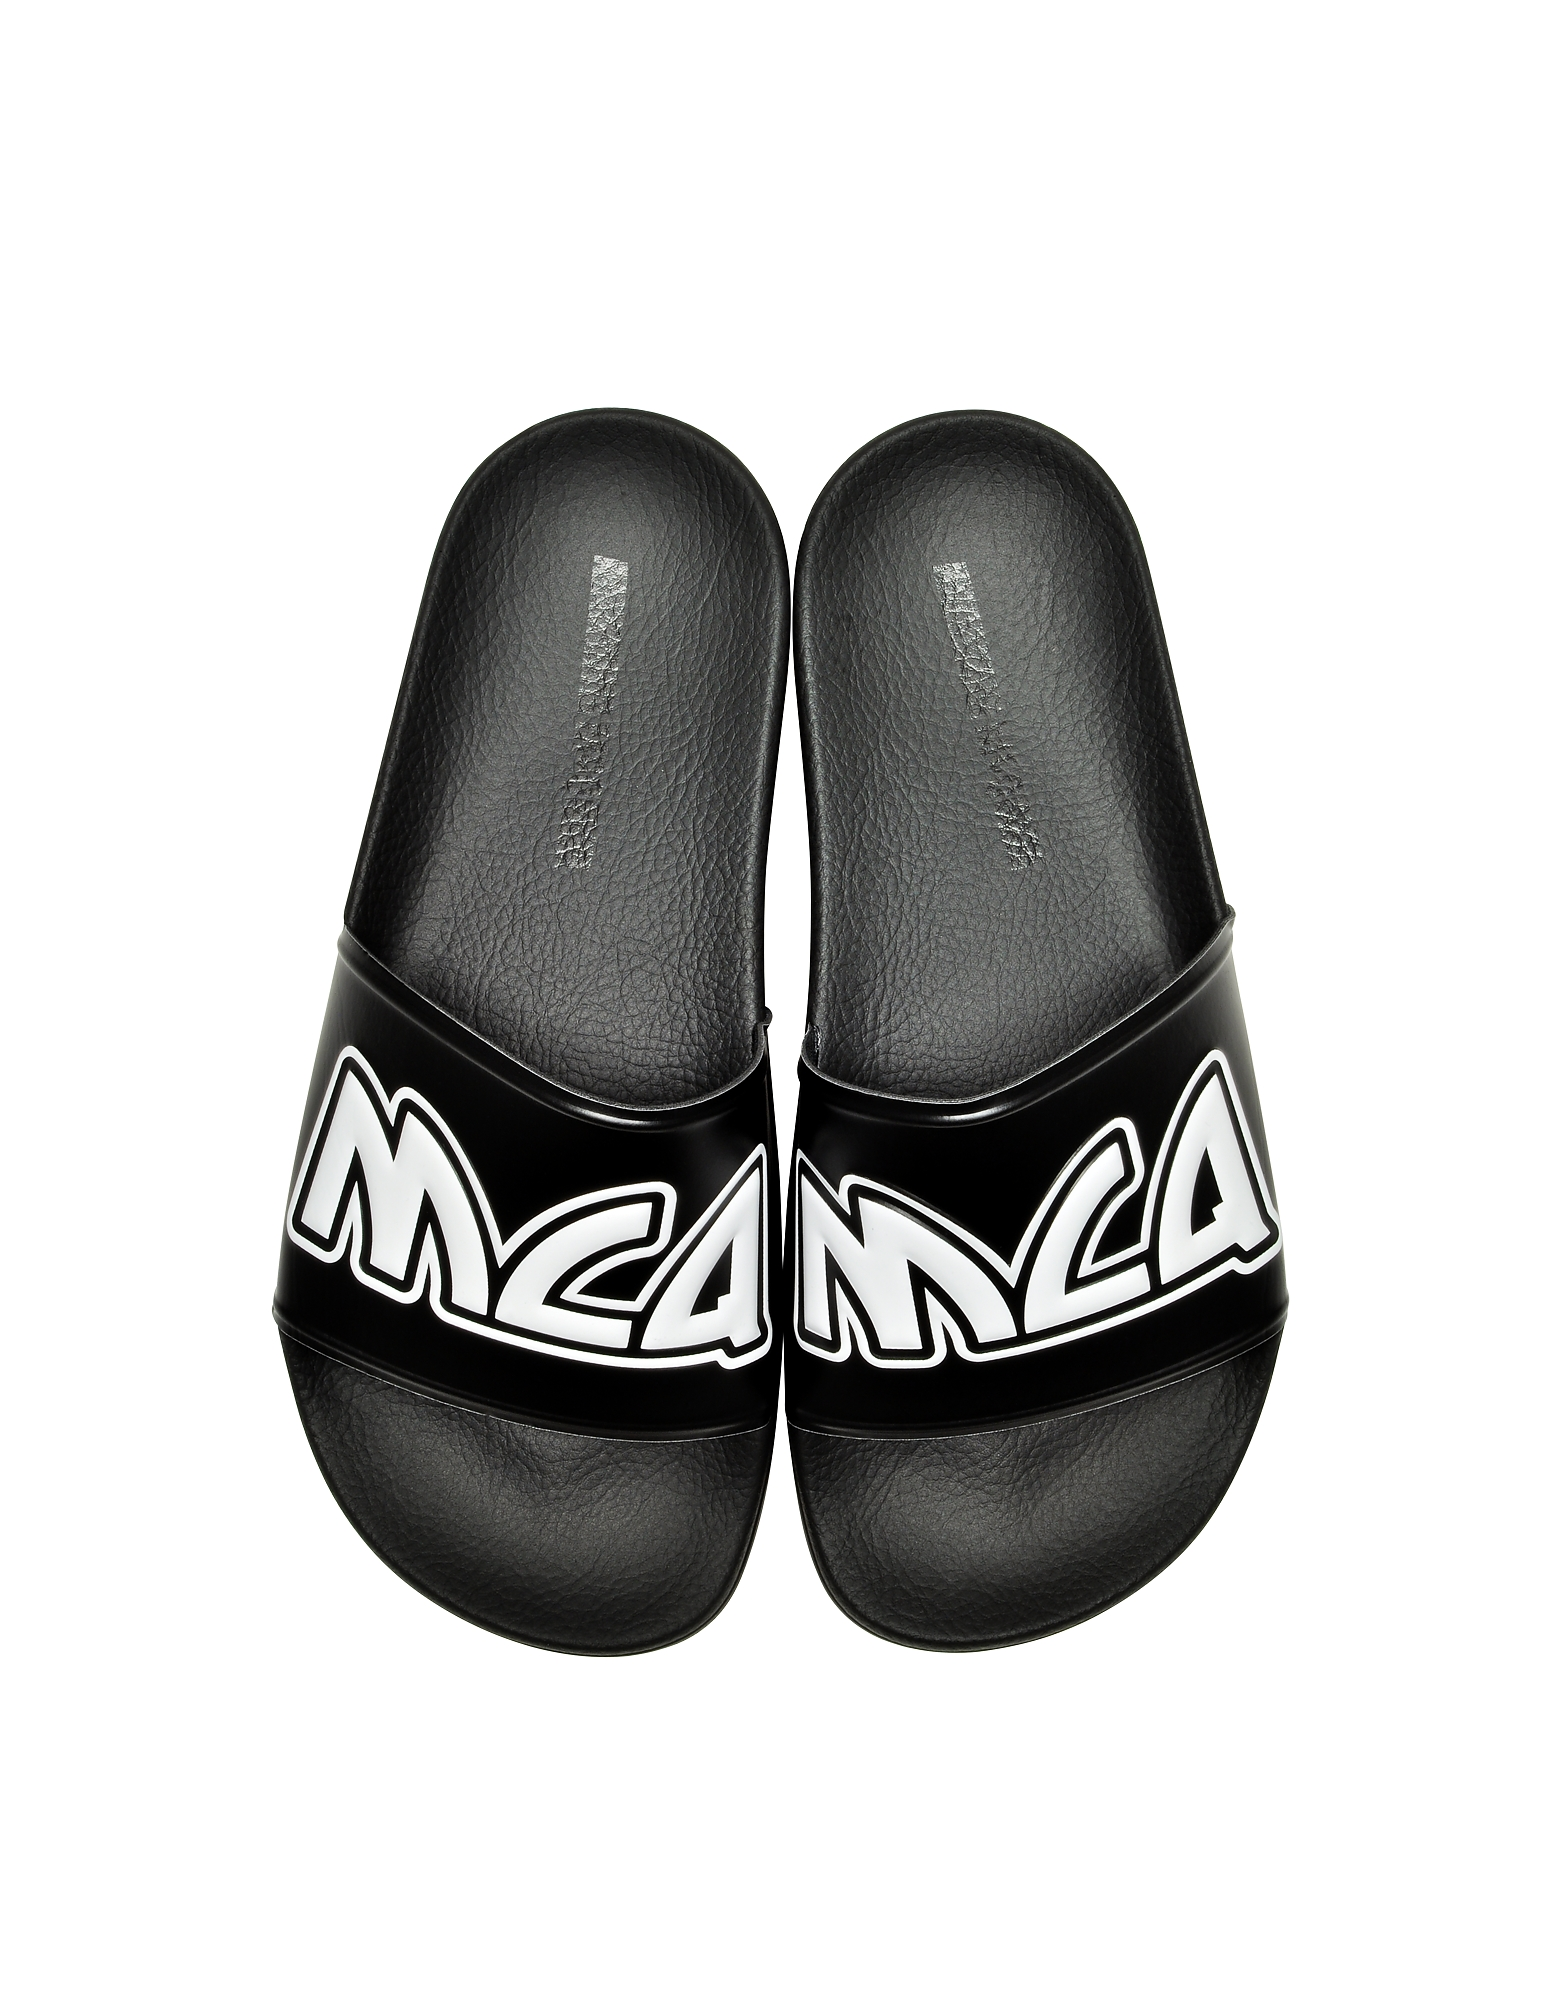 Black & White Chrissie Slide Sandals